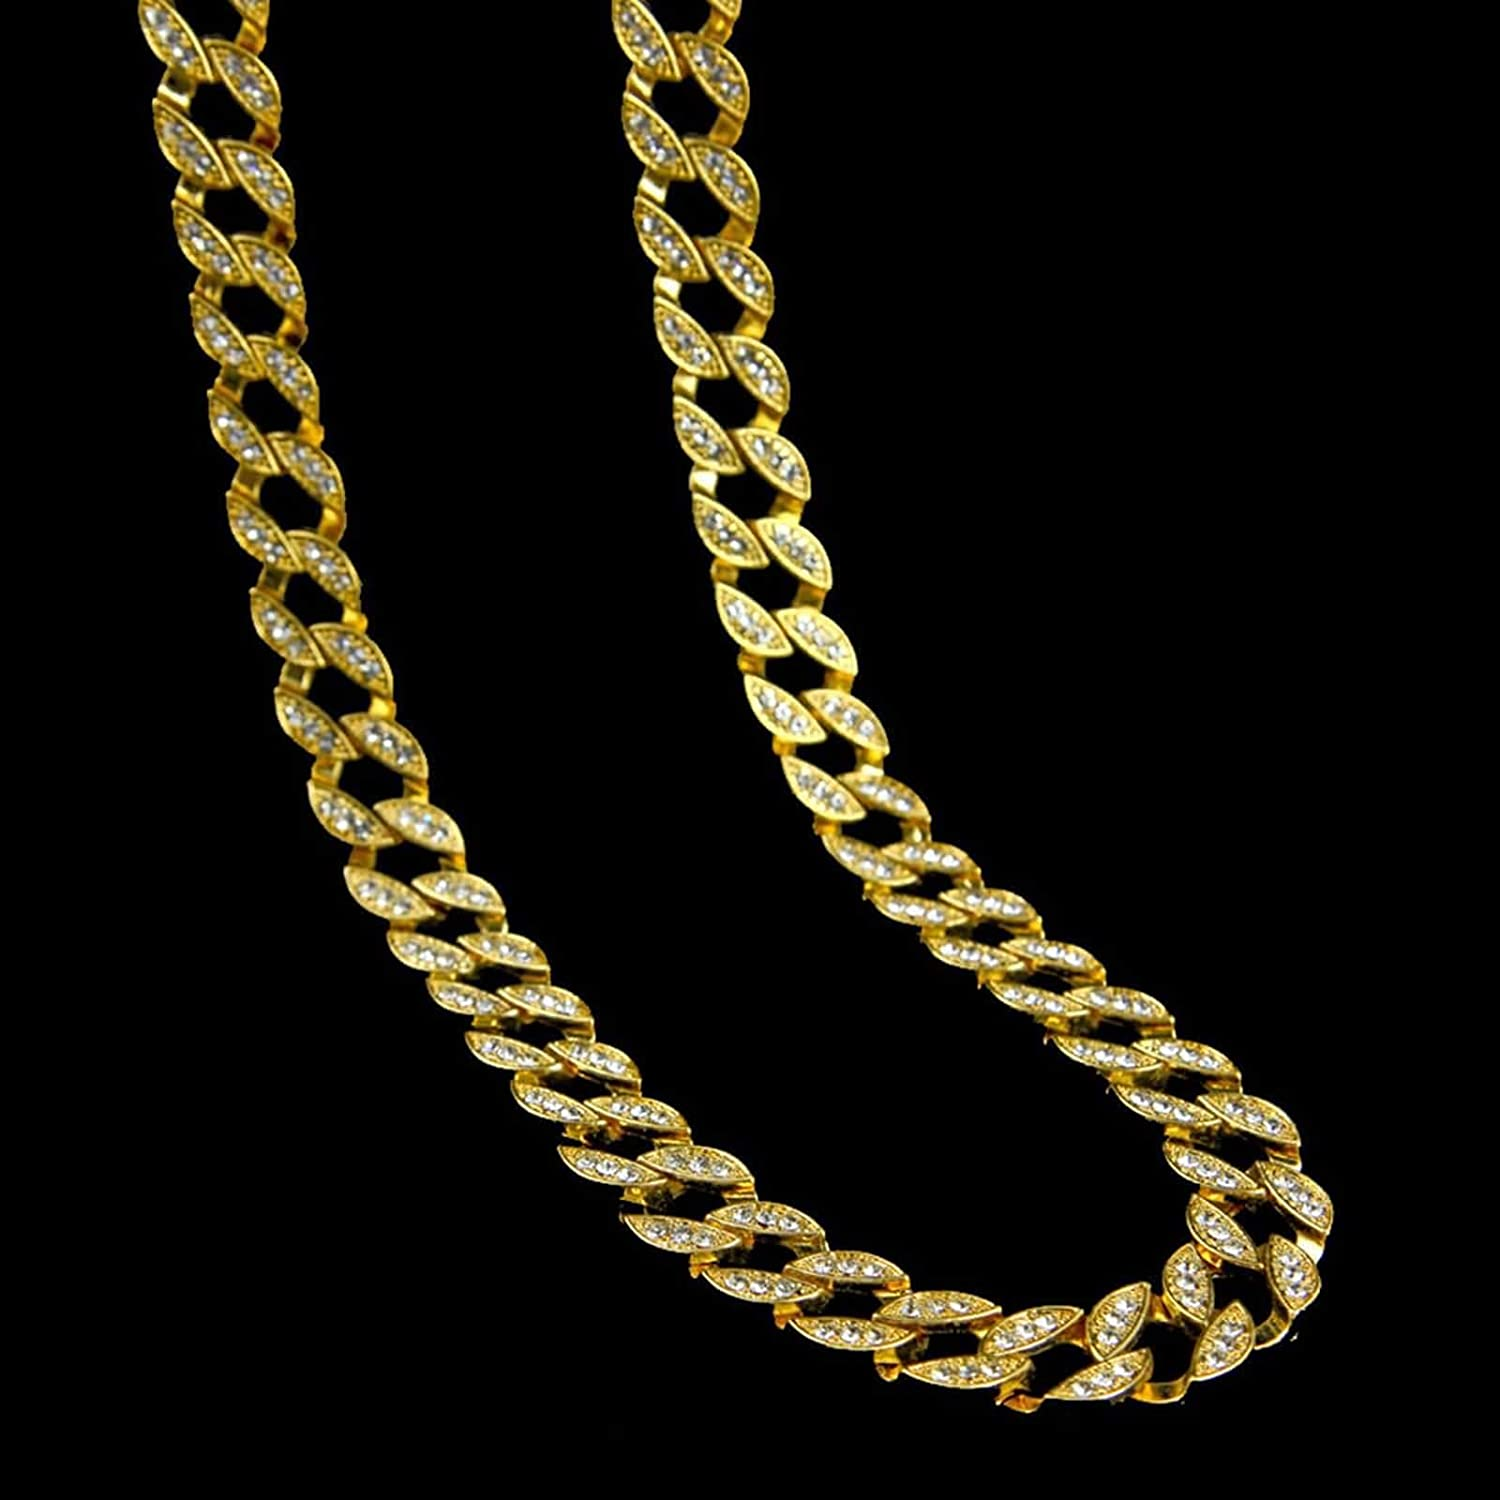 Alloy Curb Chain Necklace for Men Aokarry Stylish Mens Tennis Chain Necklace